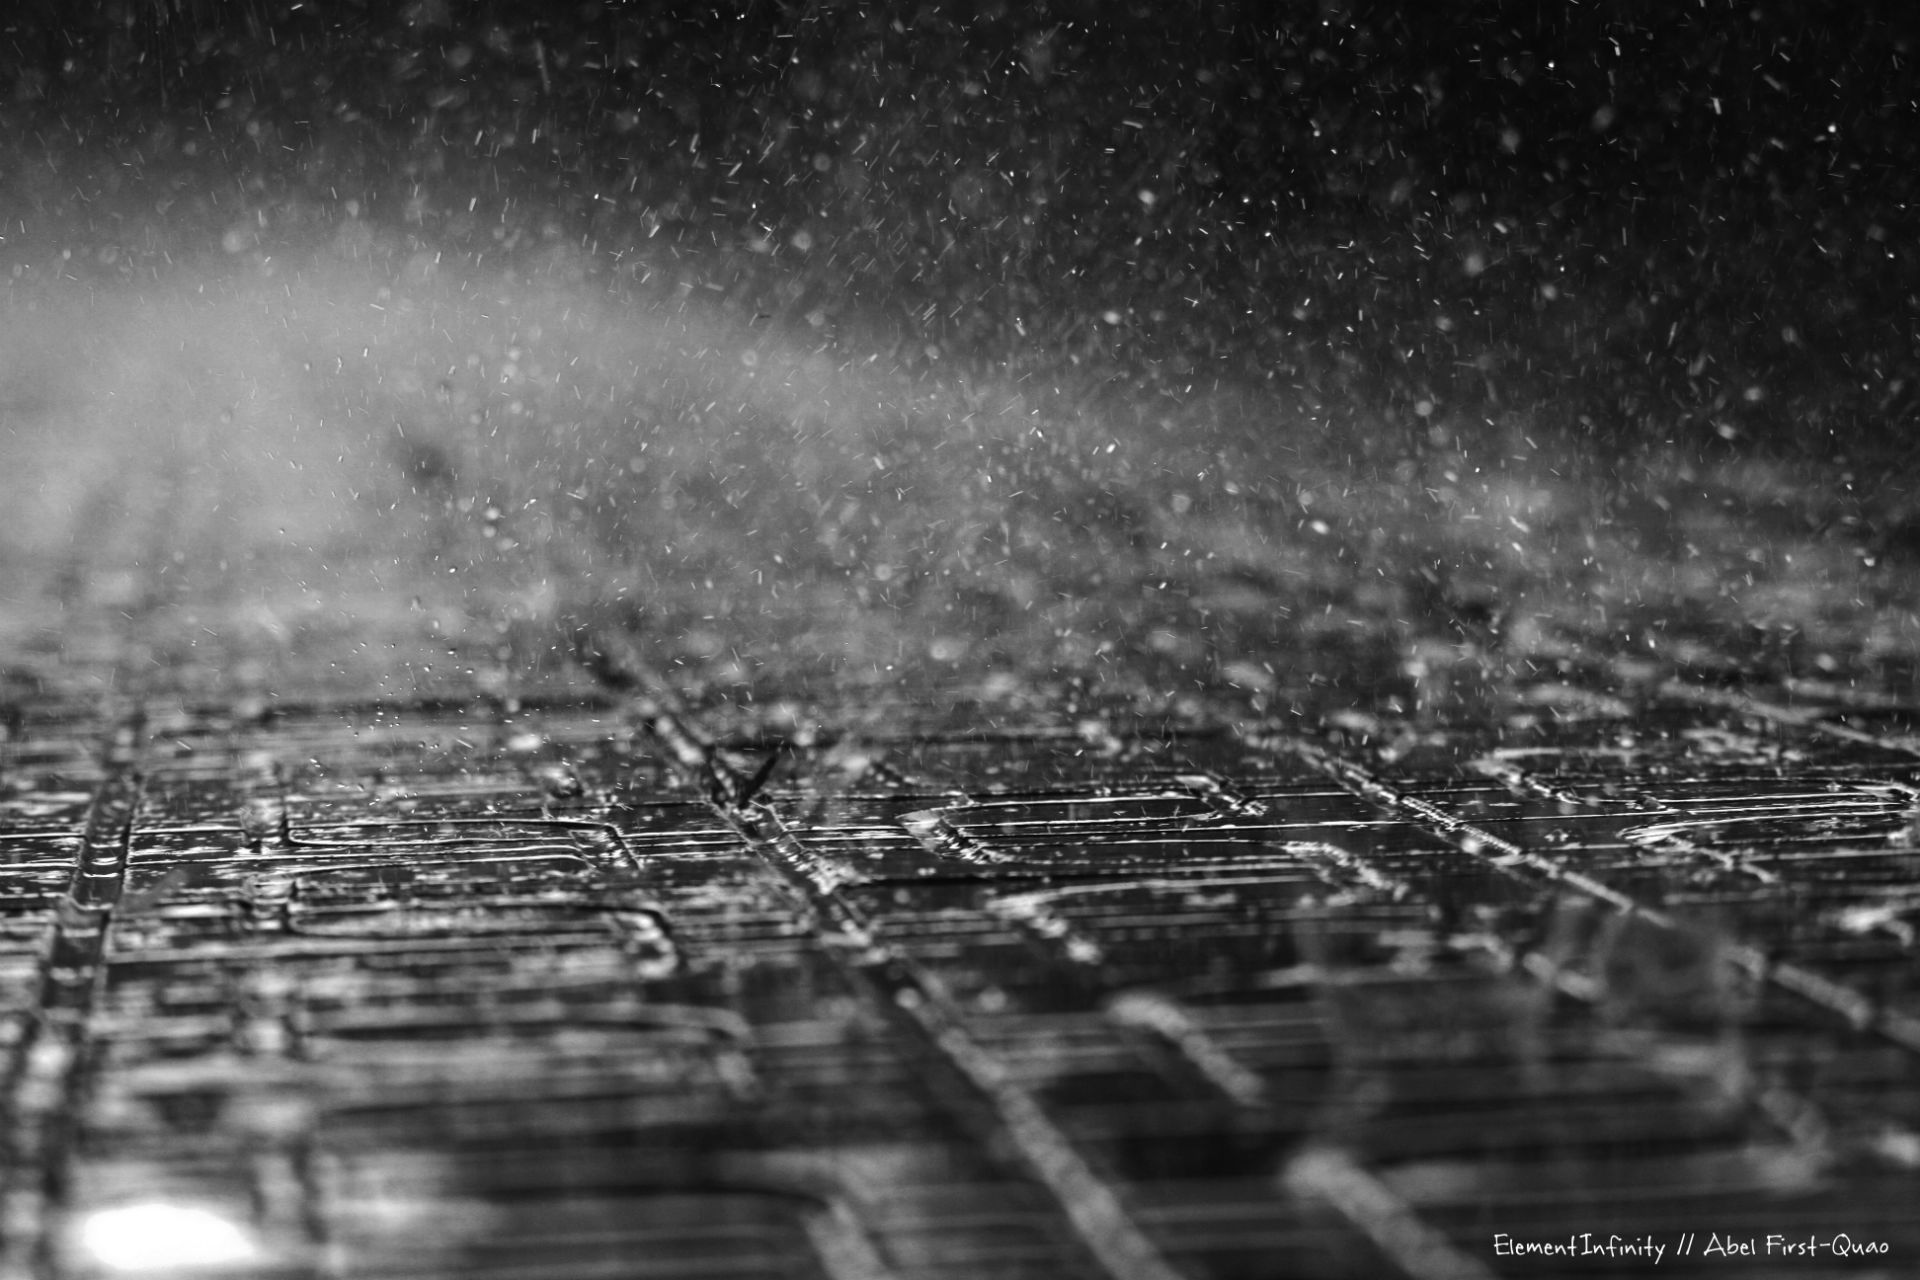 Sidewalk cobble rain storm wet mood wallpaper 1920x1280 34847 1920x1280